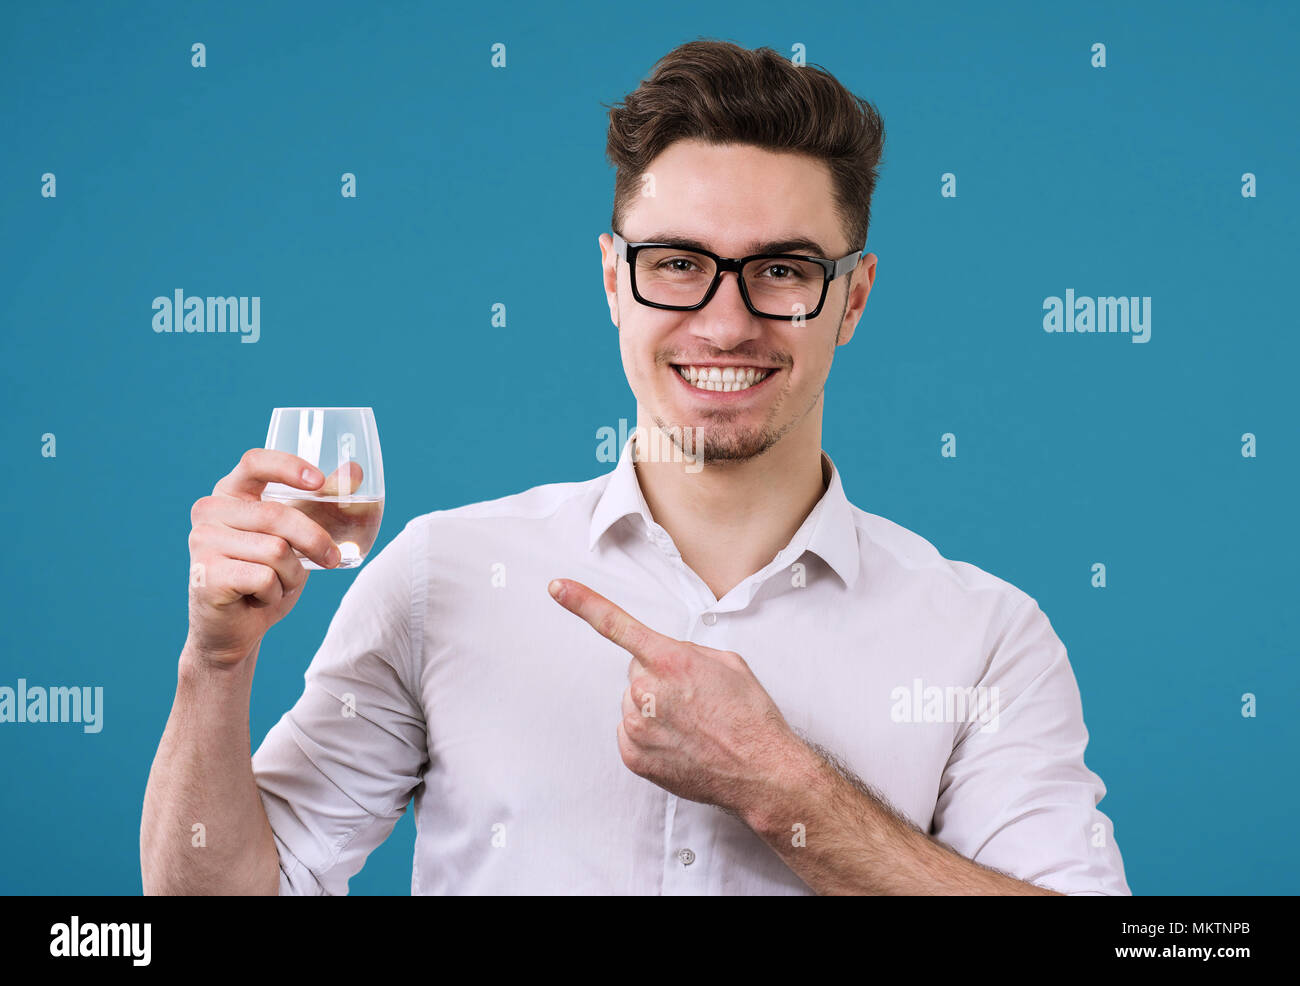 Cheerful handsome man in eyeglasses and holding glass with refreshing drink pointing at it on blue background. - Stock Image